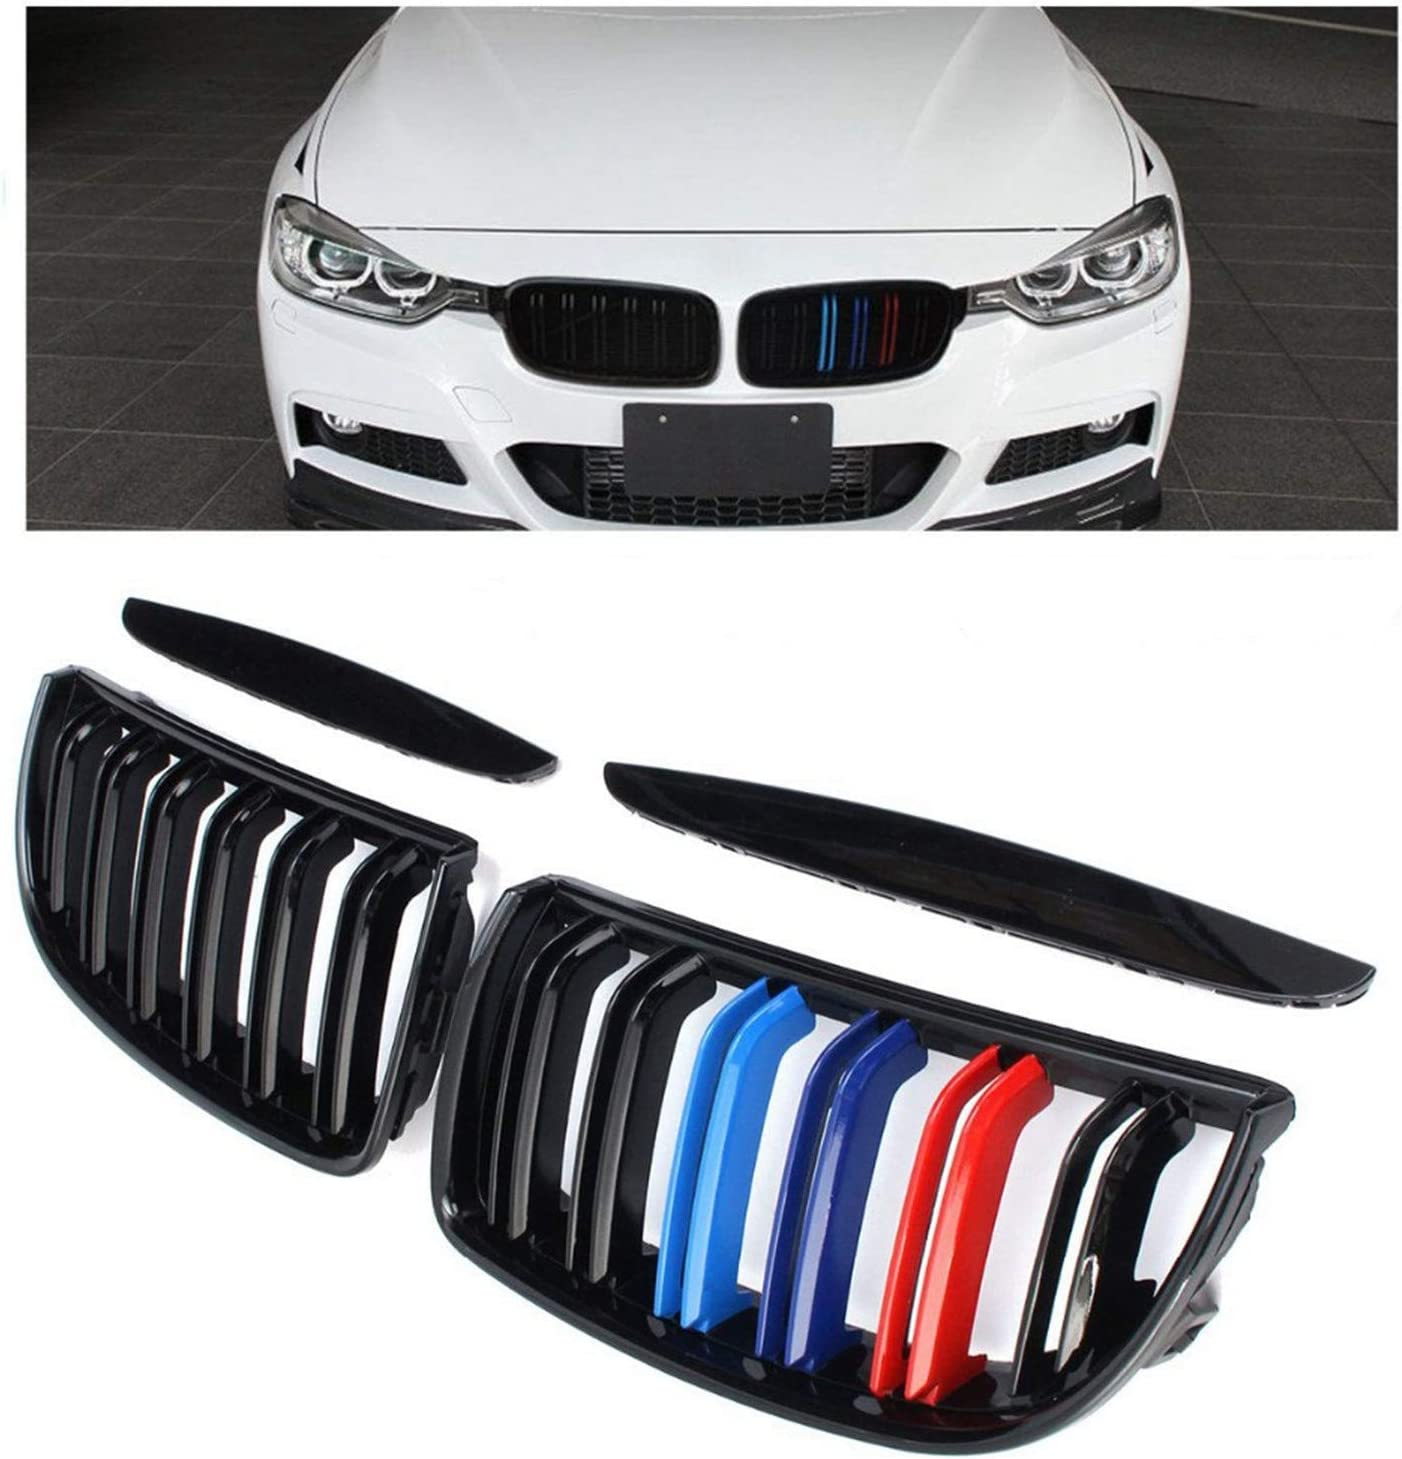 Front Many popular brands Kidney Grille Hood Grills with Line 200 -Double Compatible Virginia Beach Mall